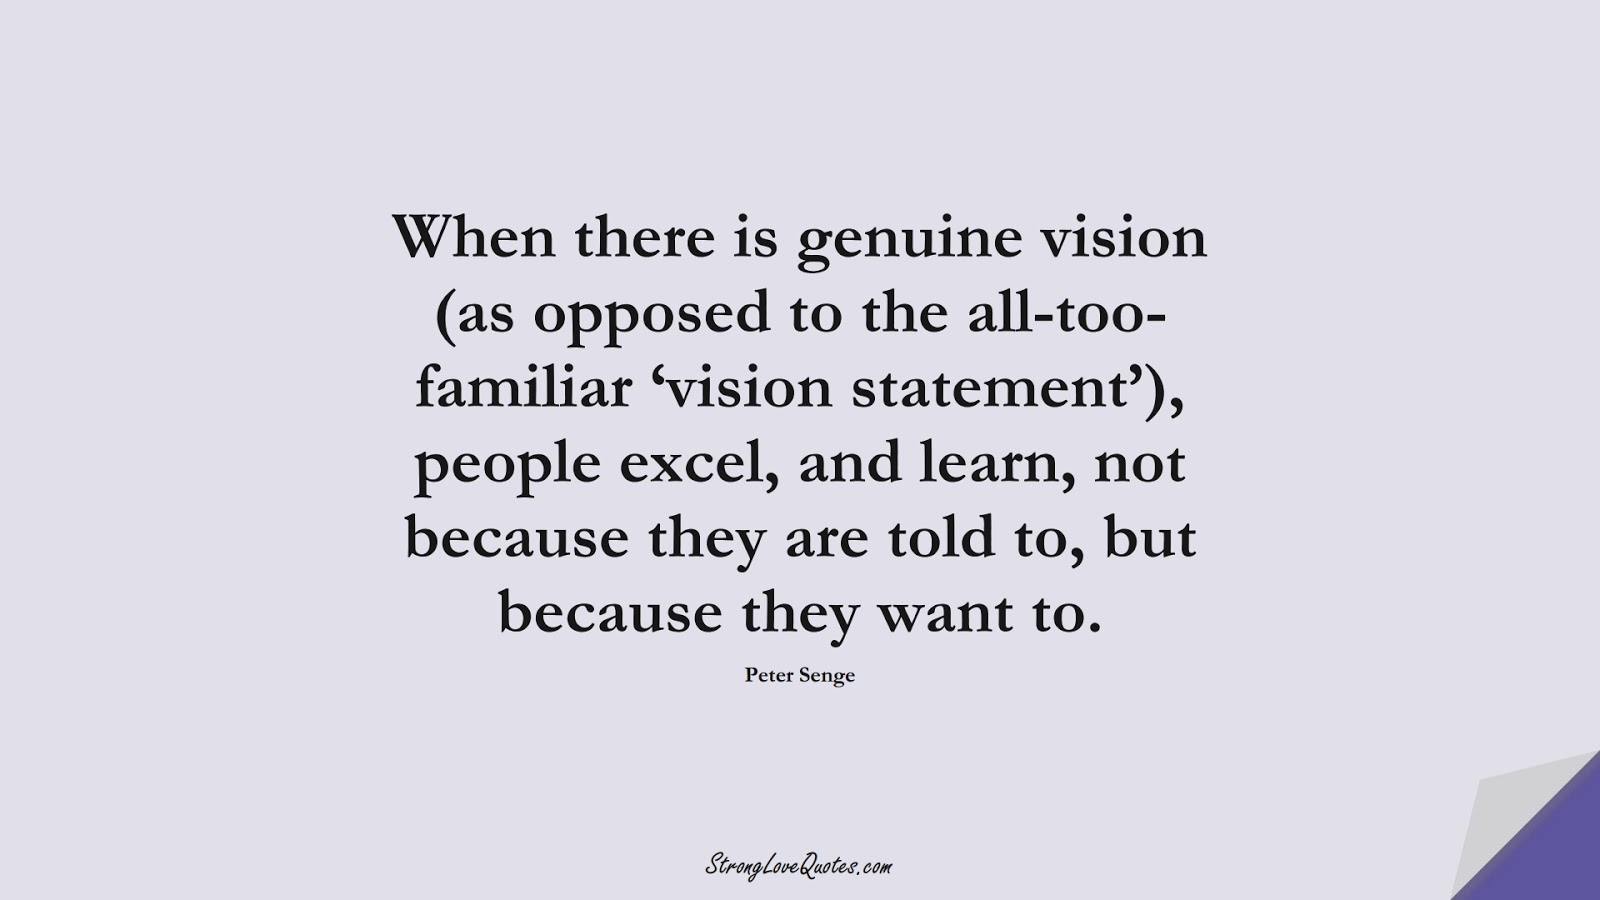 When there is genuine vision (as opposed to the all-too-familiar 'vision statement'), people excel, and learn, not because they are told to, but because they want to. (Peter Senge);  #LearningQuotes